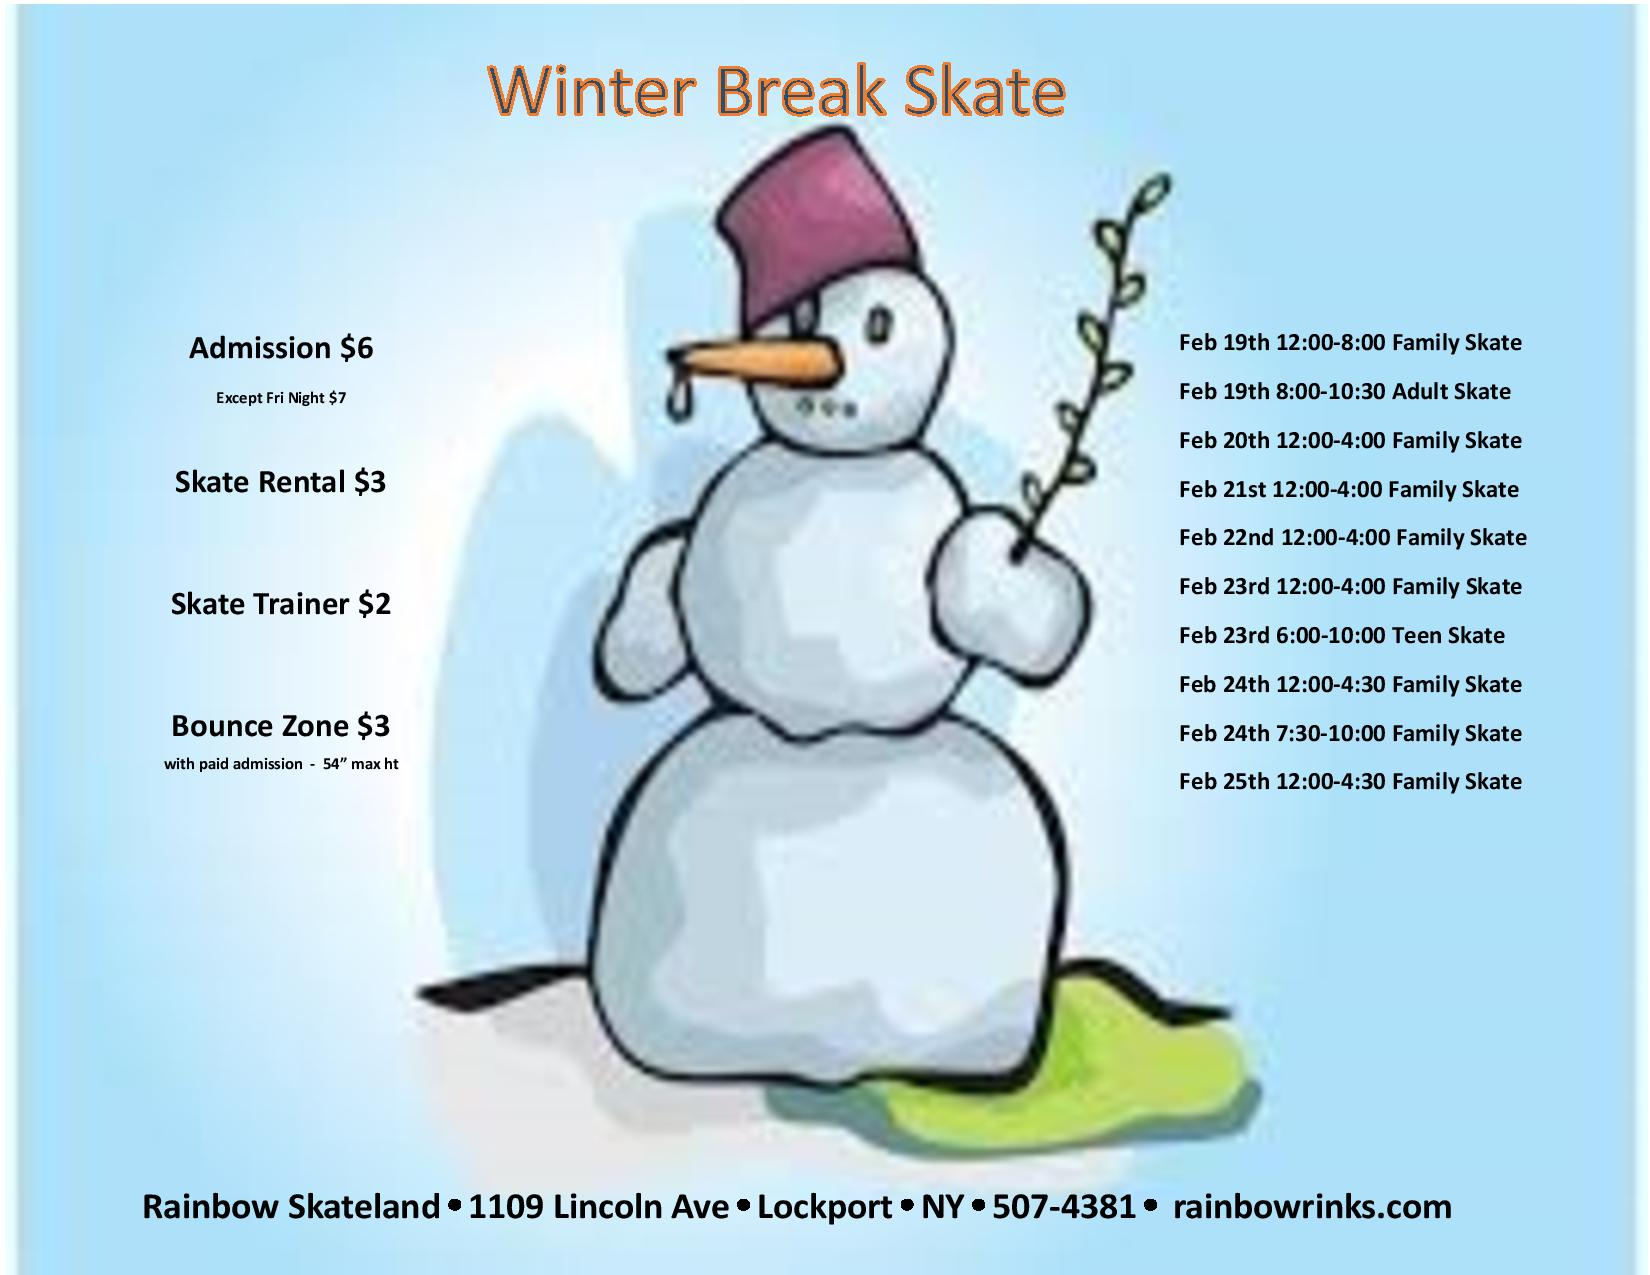 Winter Break Skate - Rainbow Skateland